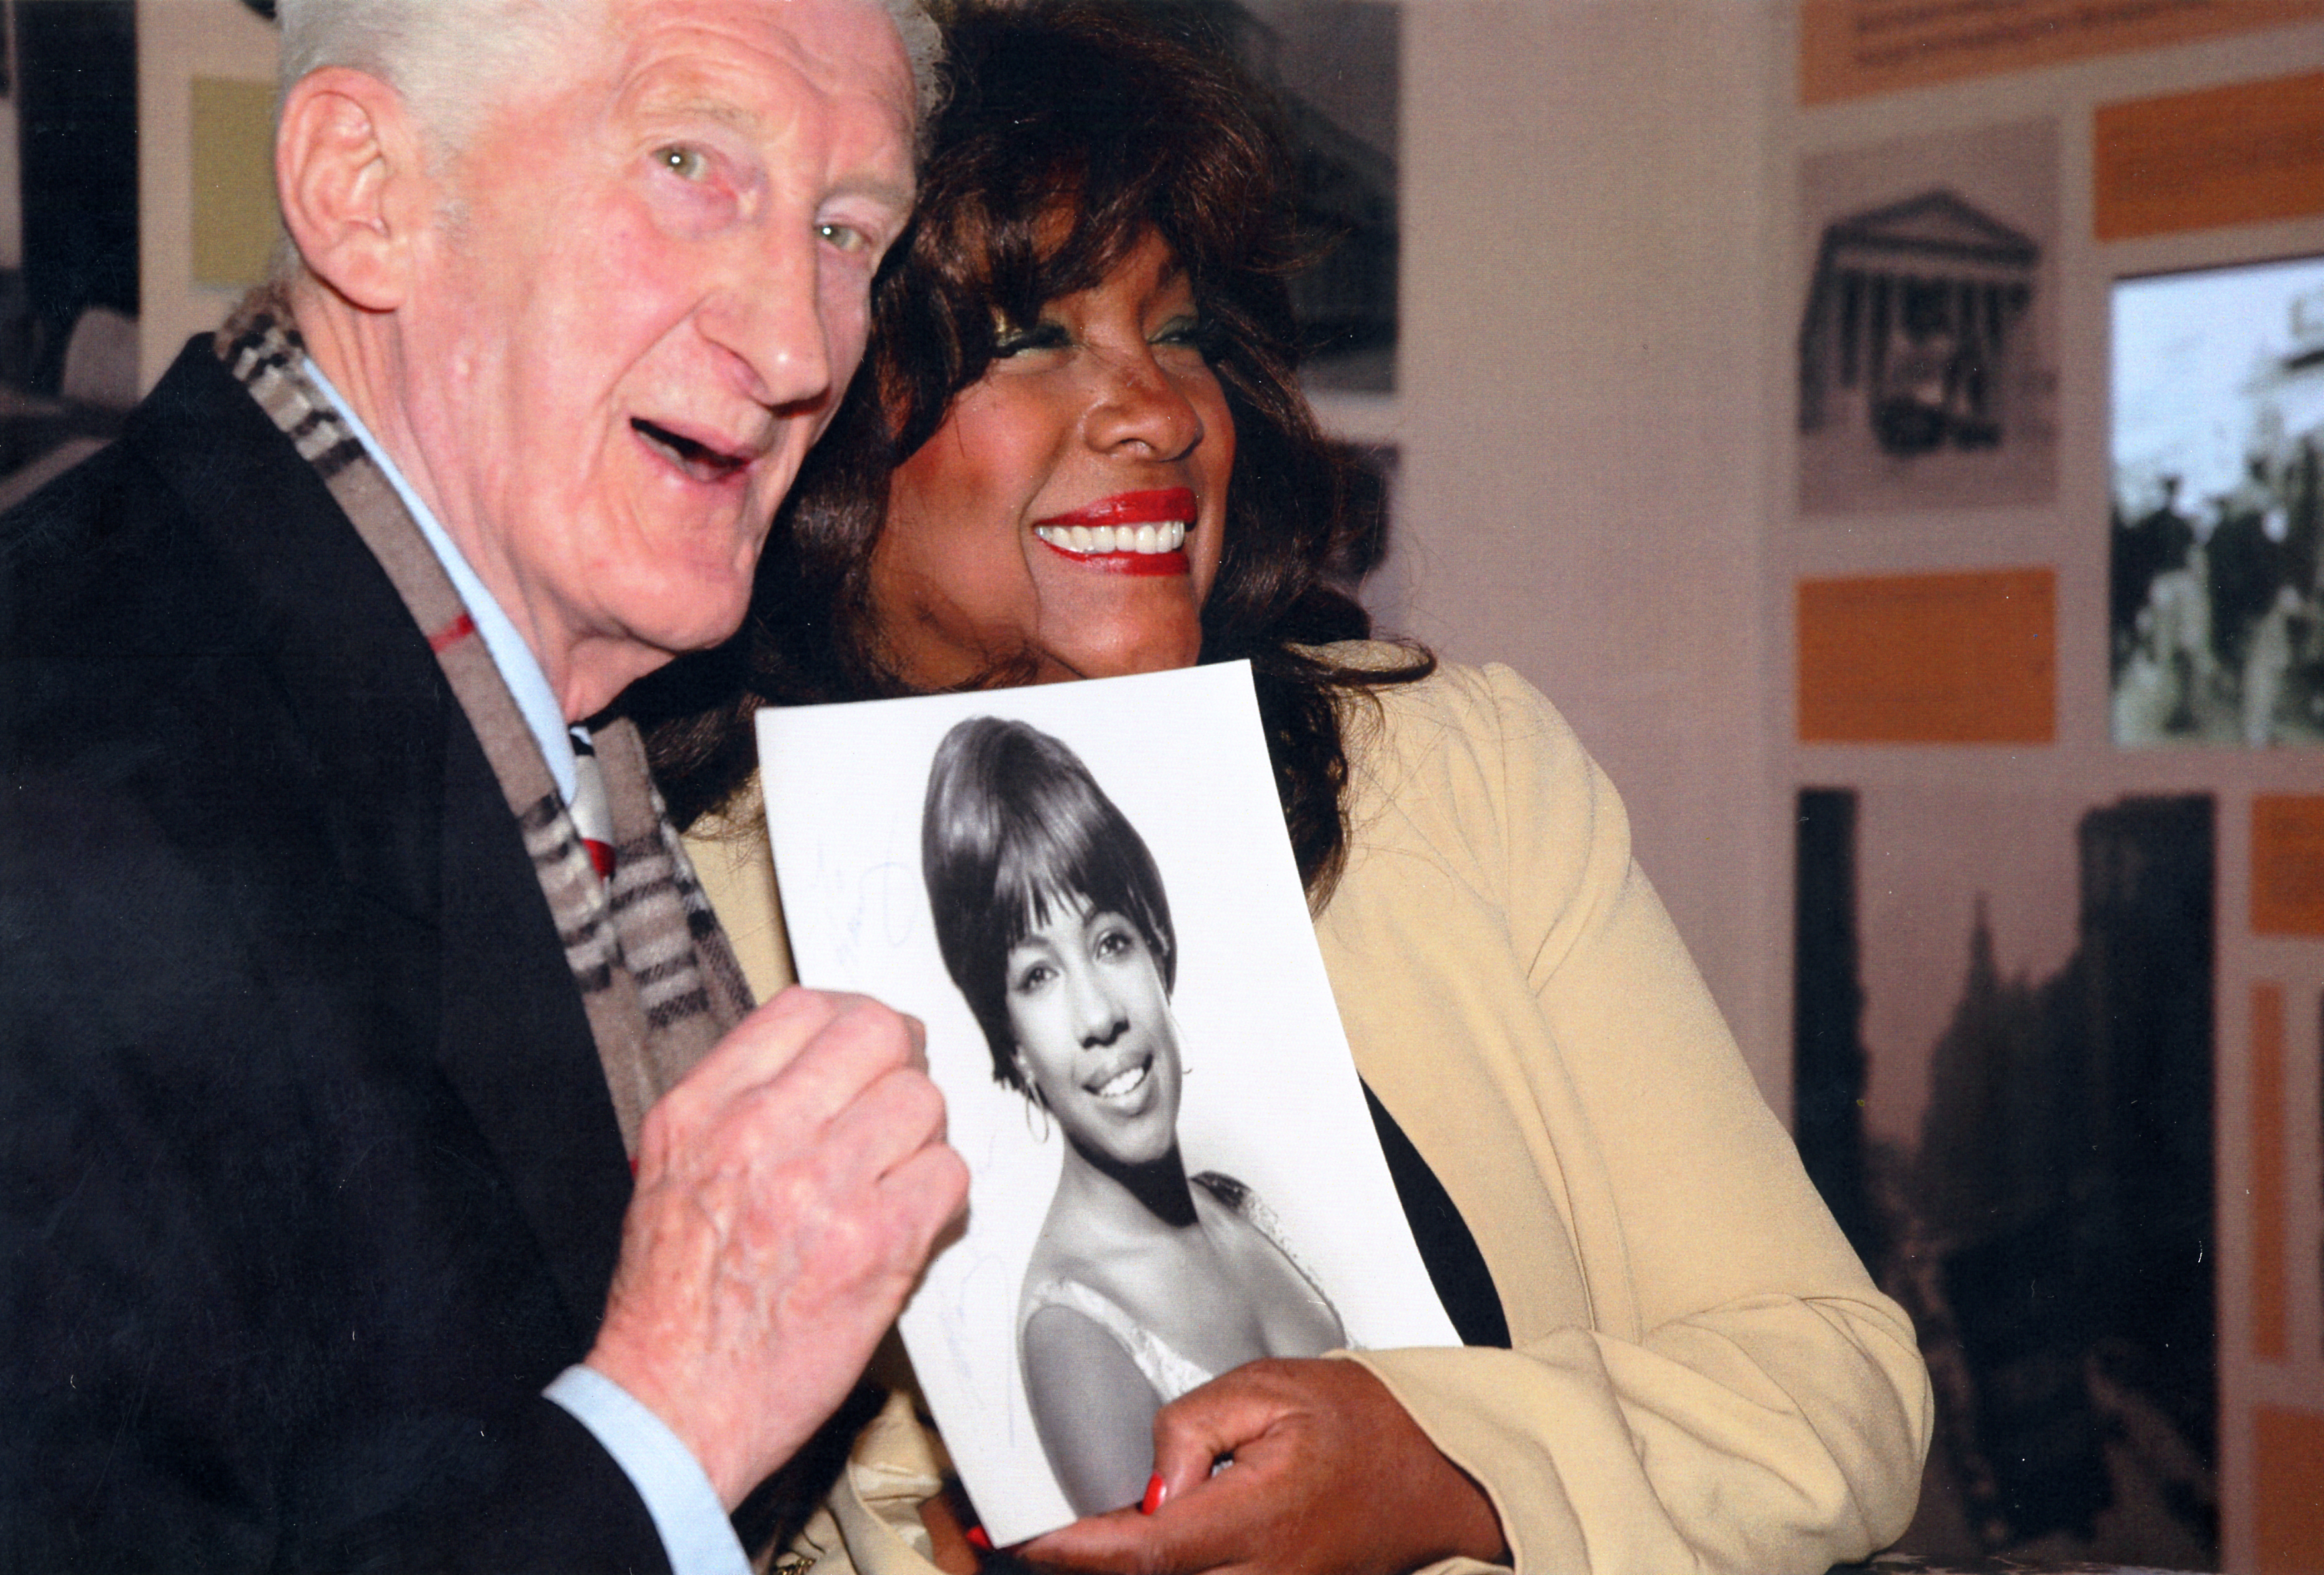 SPECIAL MOMENT: Harry Goodwin is reunited with Supremes legend Mary Wilson